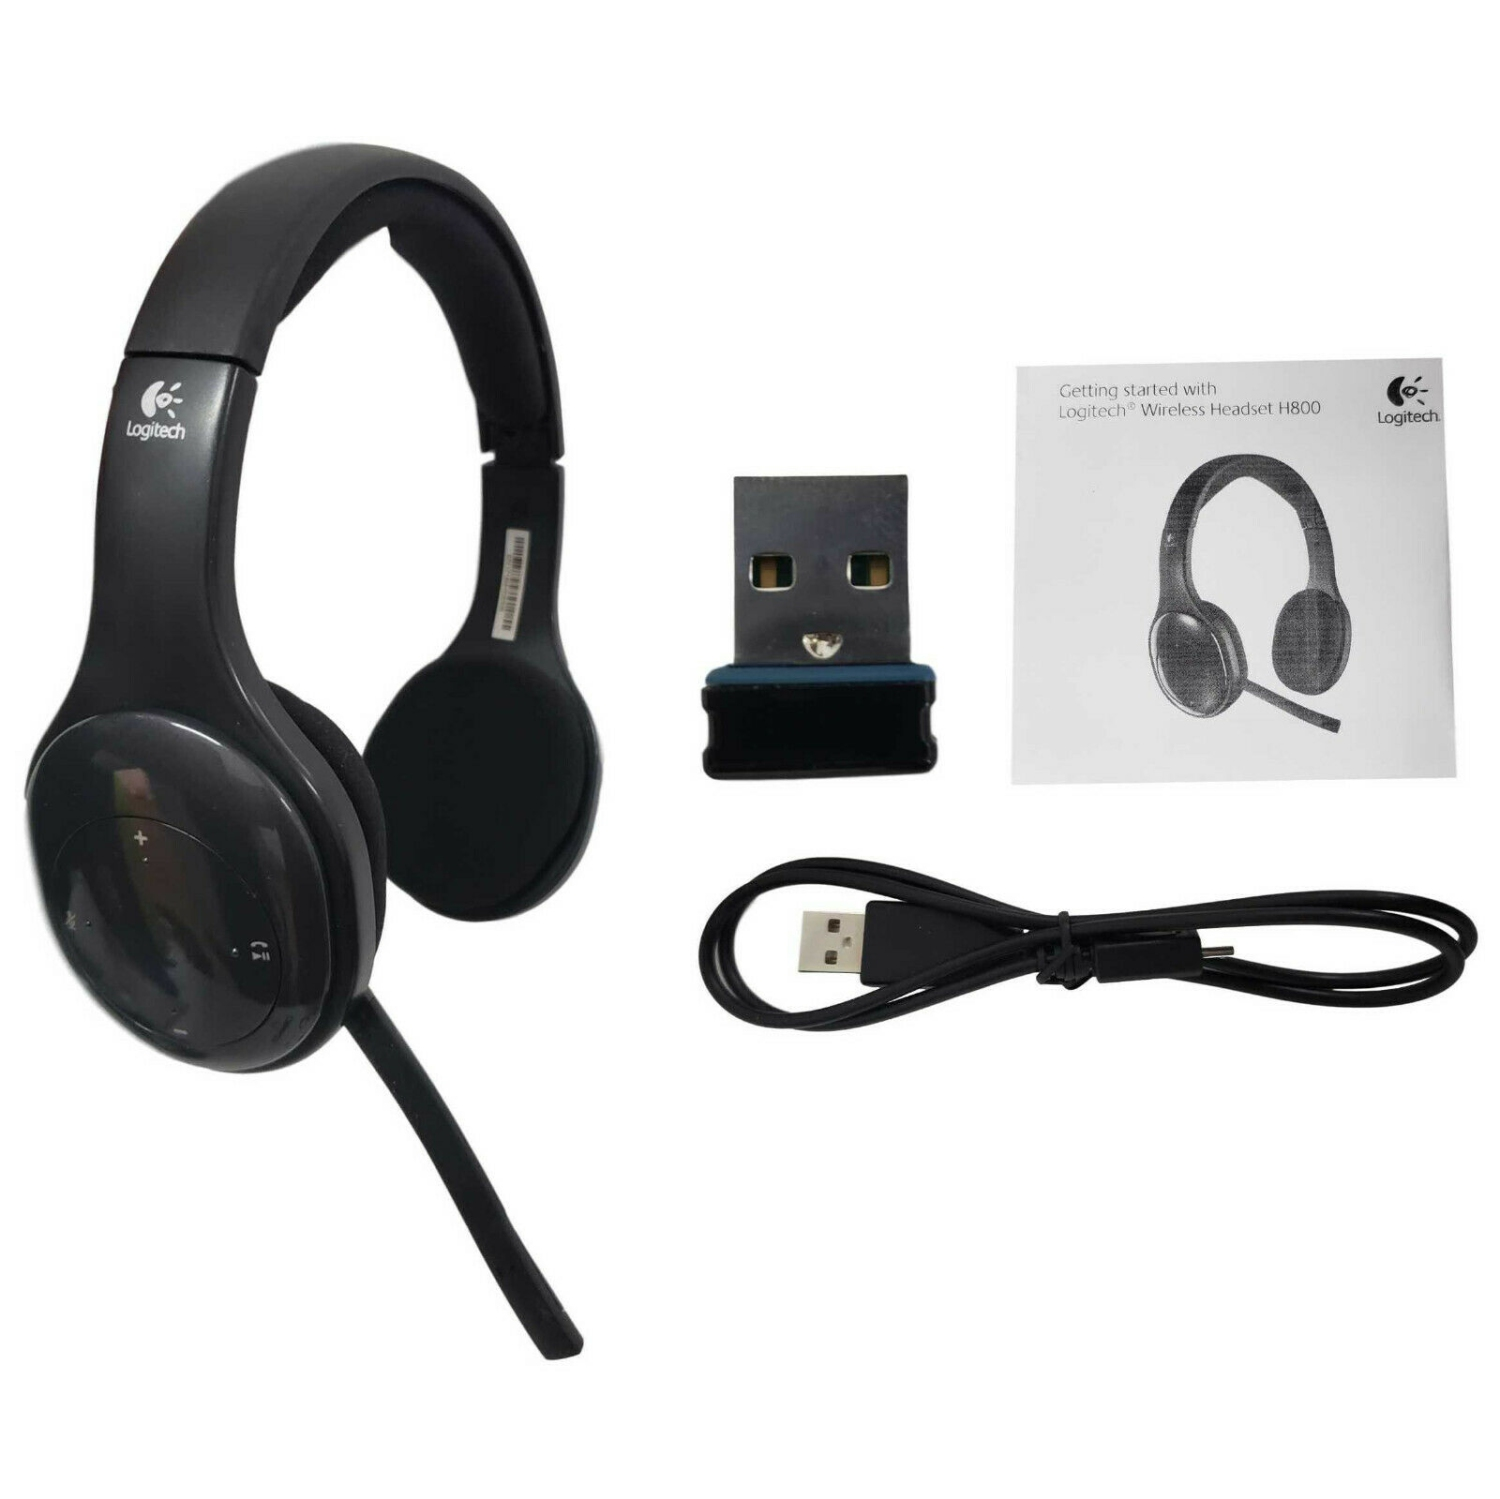 Logitech H800 Wireless Computer Headset Noise Cancellation 981 000337 Certified Refurbished Best Buy Canada